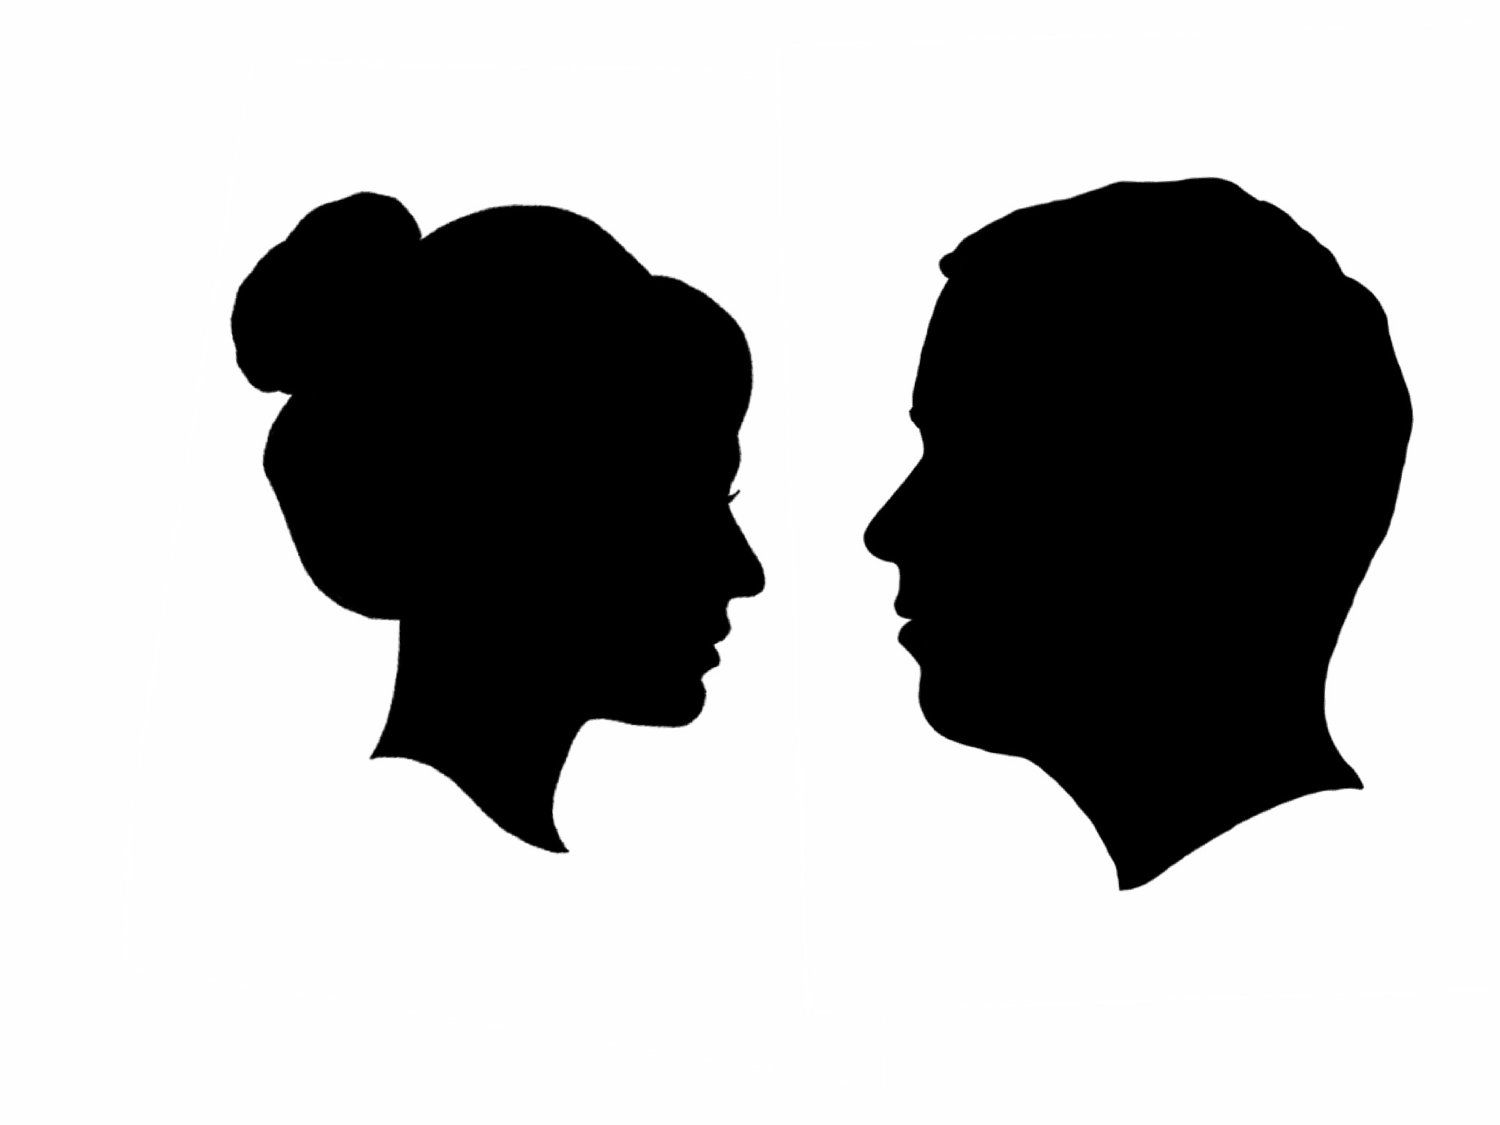 Face of a man side view clipart image free download Side Face Silhouettes Clipart - Clipart Kid | Shillouete heads ... image free download